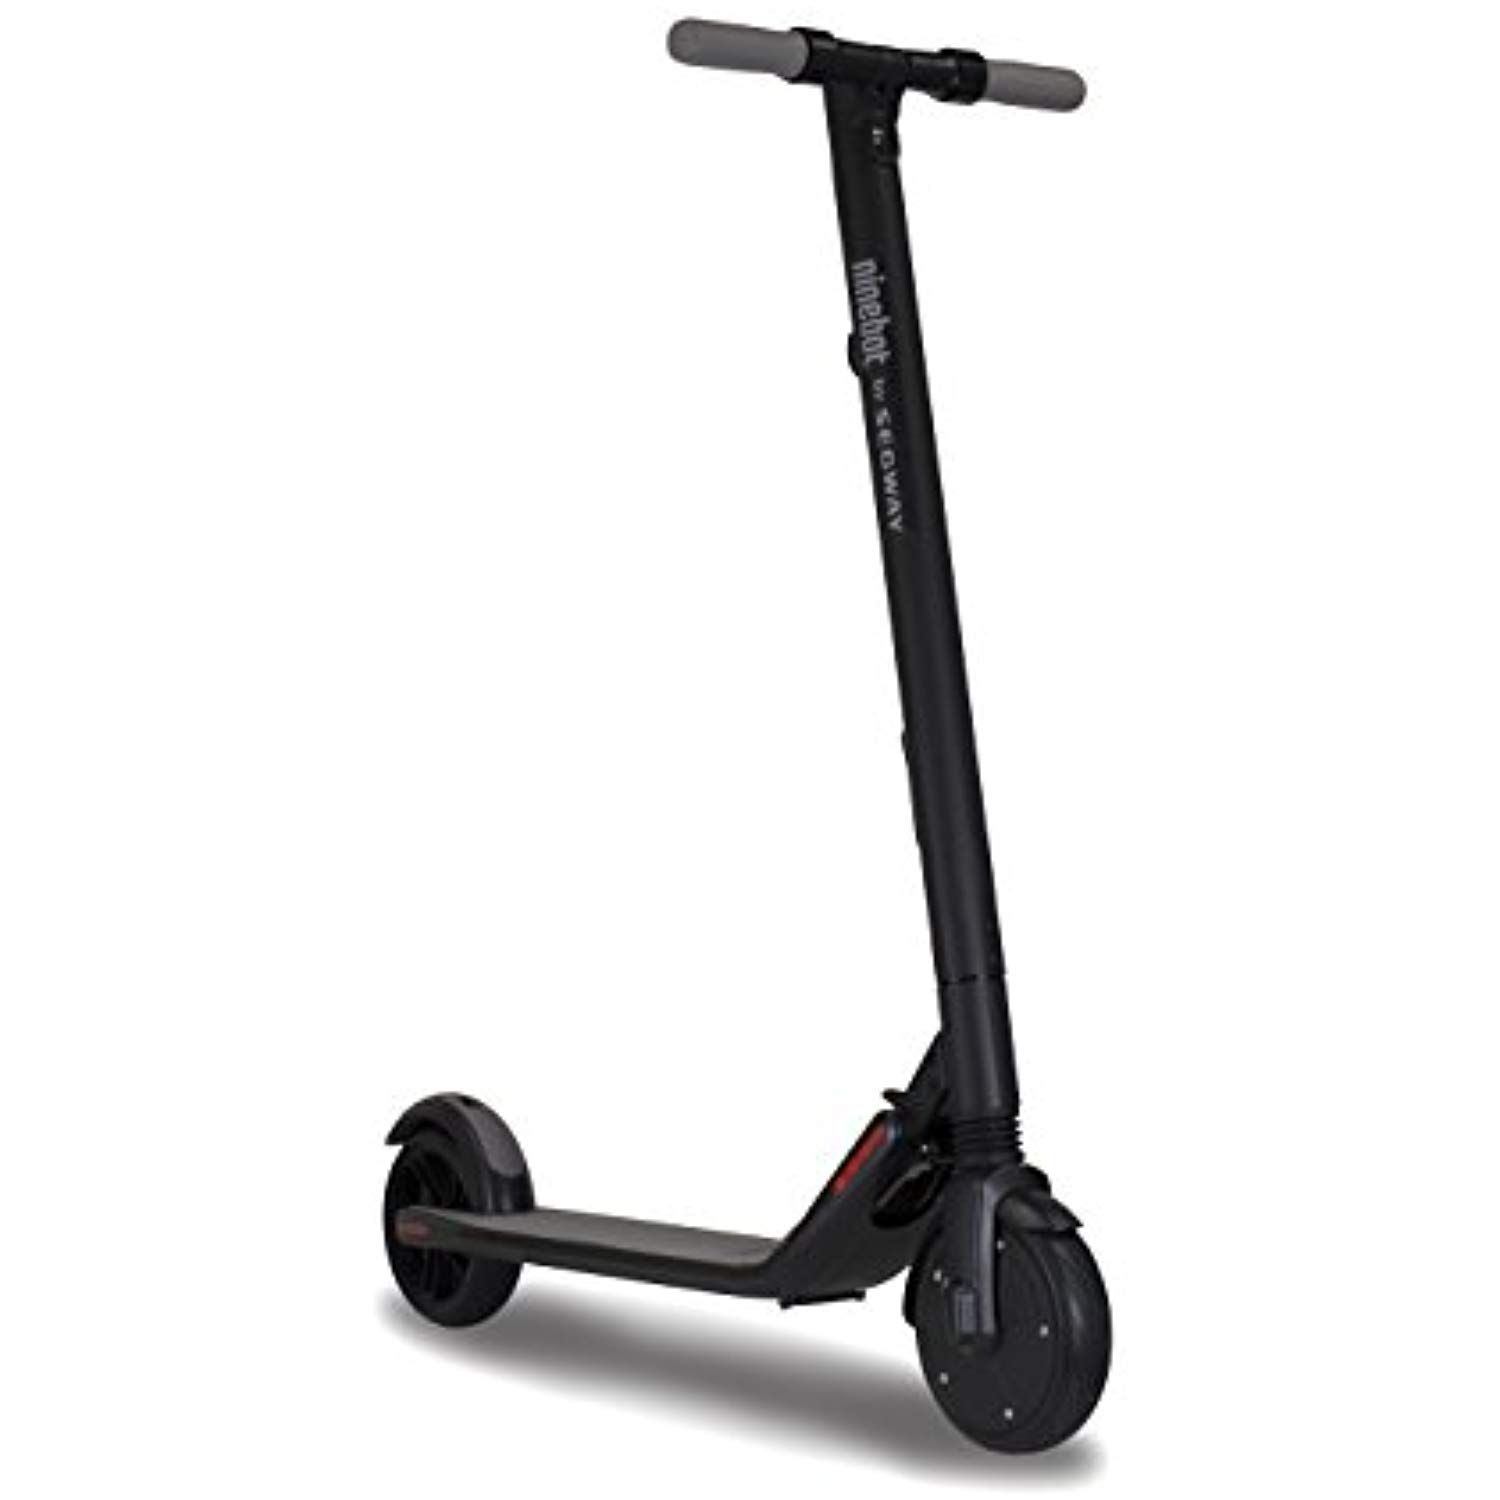 Segway Es1 Escooter High Performance 8 Inch Front And 7 5 Inch Back Tires Up To 15 5 Of Range And 12 4 Of Mph Of Top Speed Cruise Segway Tricycle Scooter